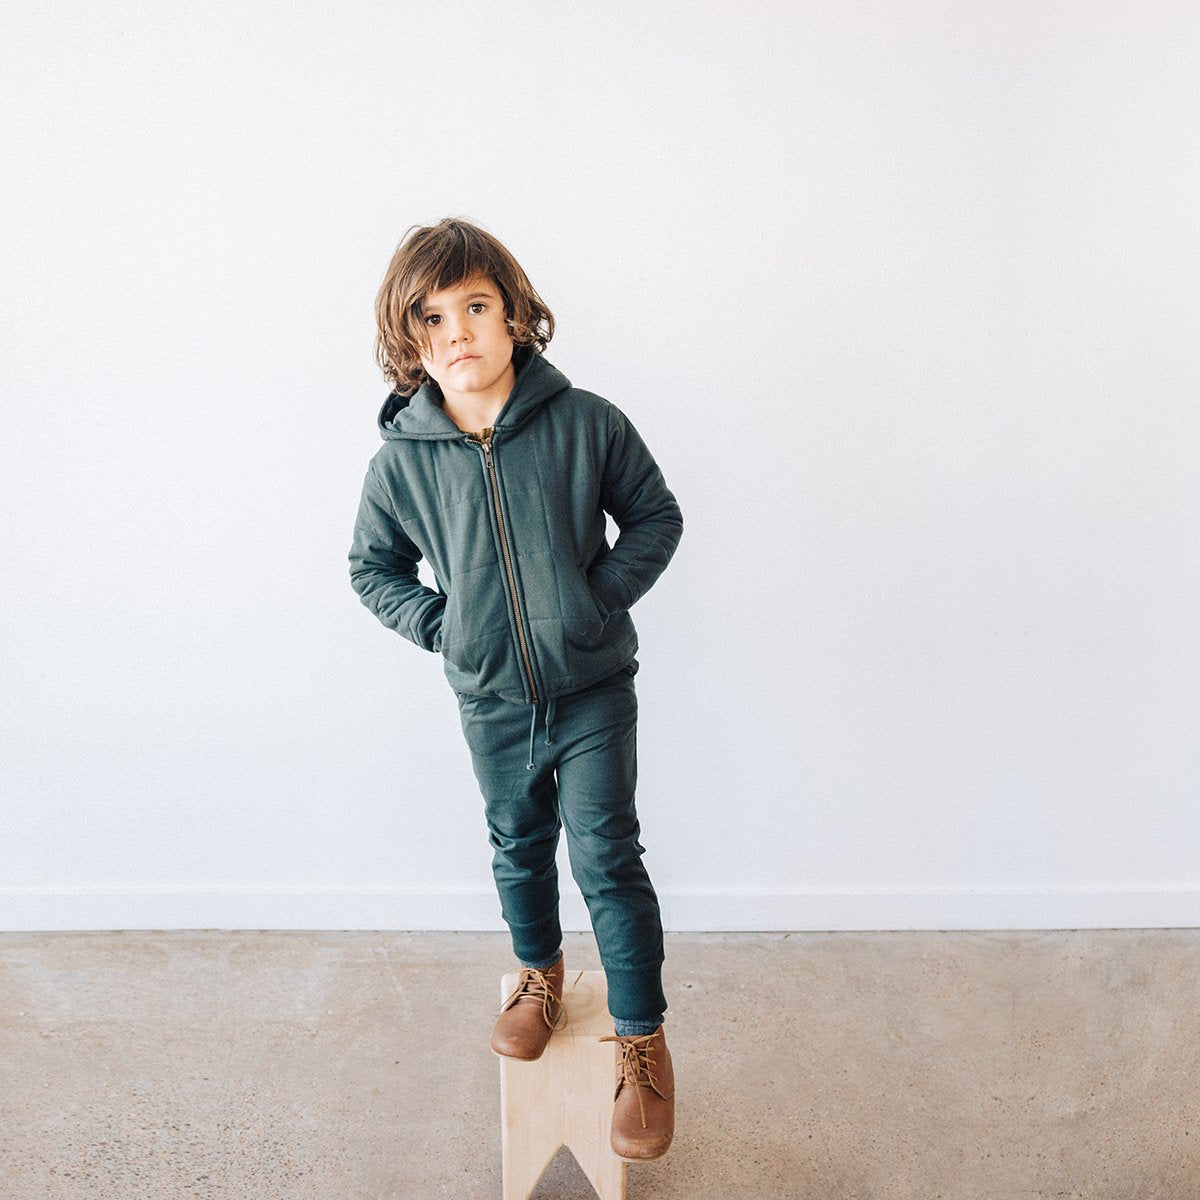 Boy clothing & accessories